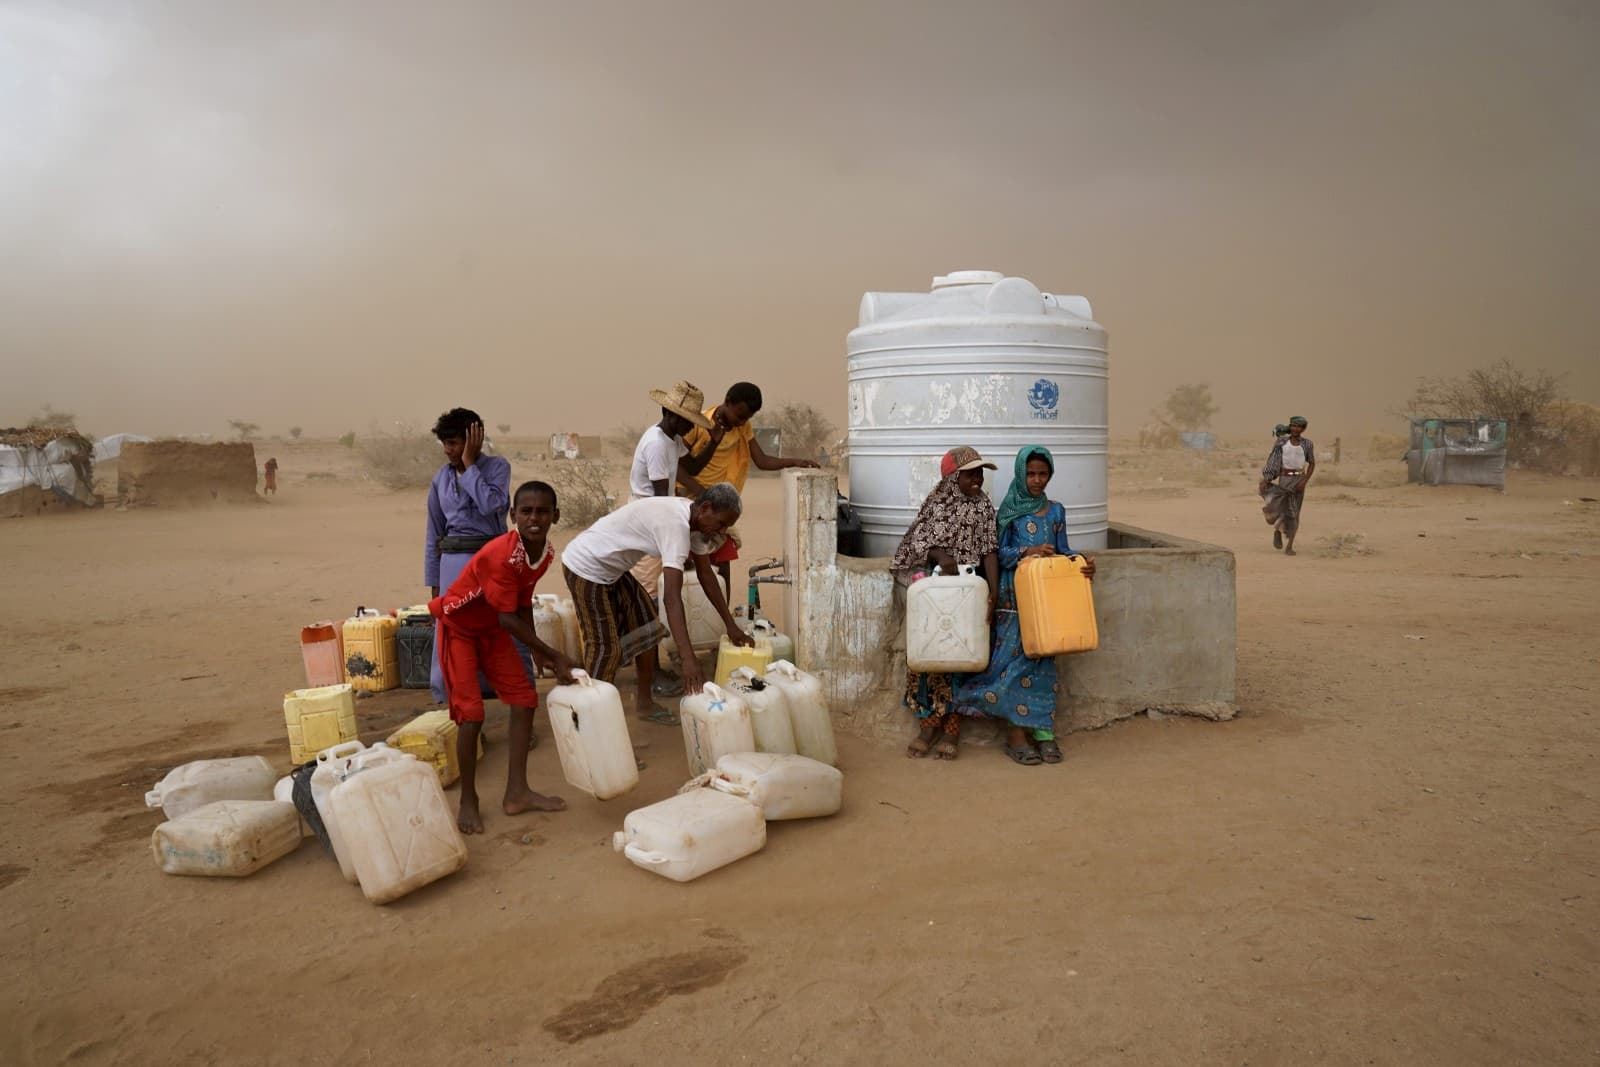 A water collection spot for displaced persons in the Abs settlement